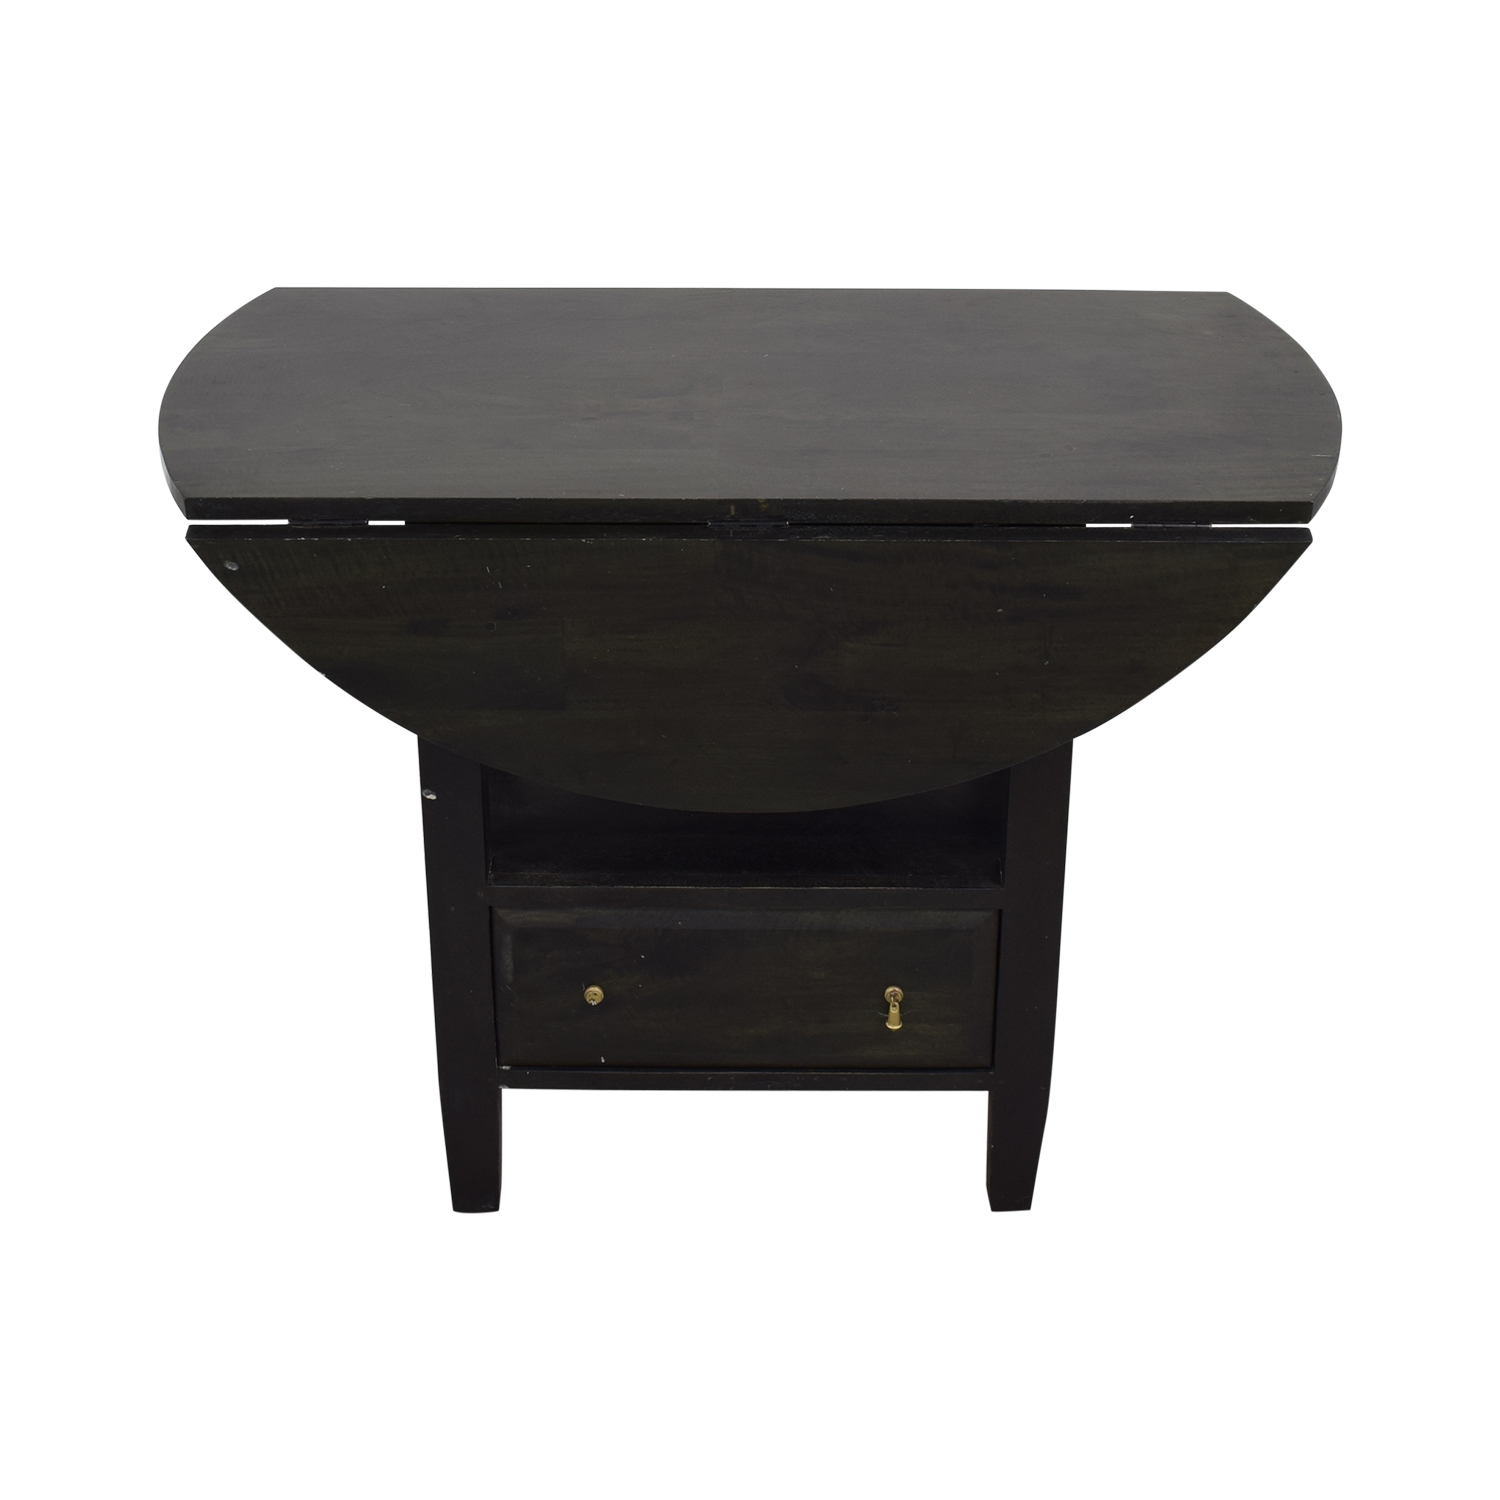 Crate & Barrel Drop Leaf Counter Table with Storage sale